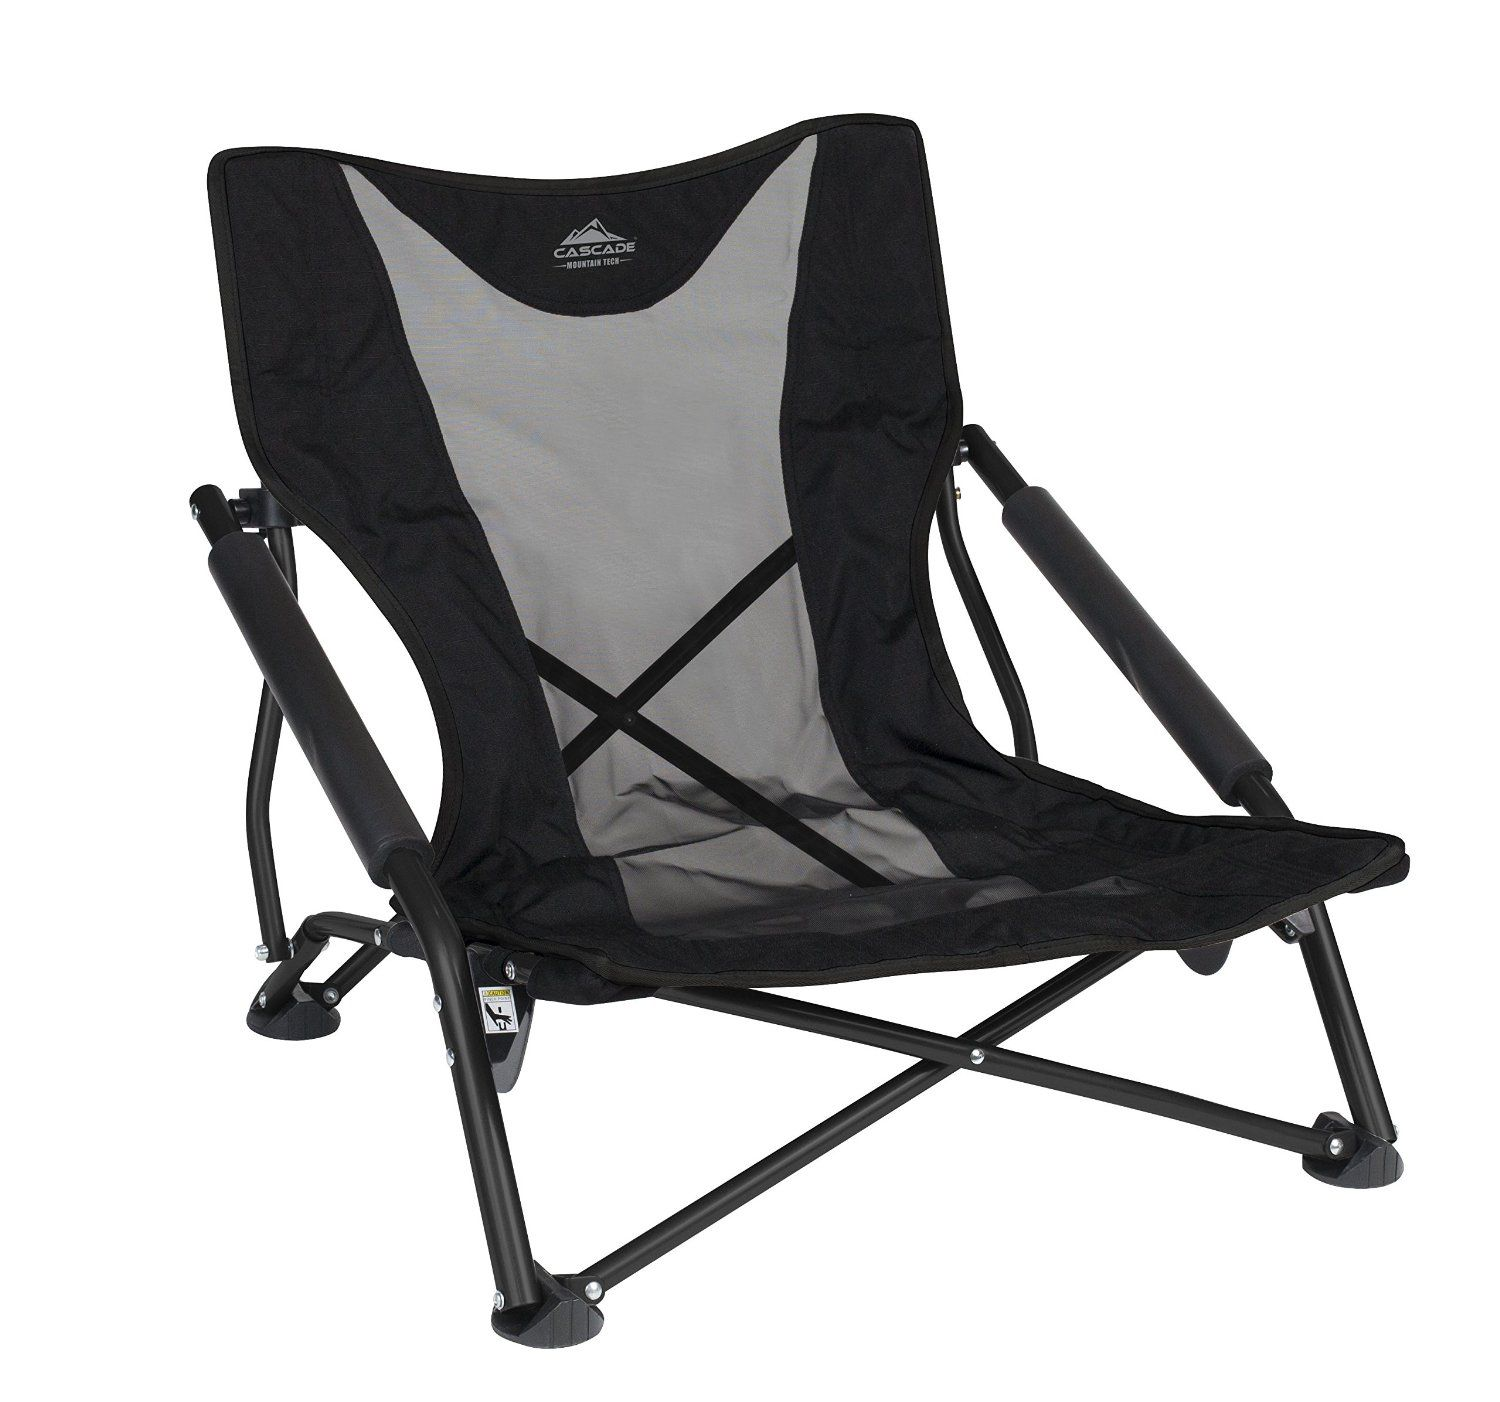 Marvelous Low Profile Outdoor Chairs #10 - Outdoor Chair - Cascade Mountain Tech Lightweight, Compact And Durable Low  Profile Chair U2030Û_